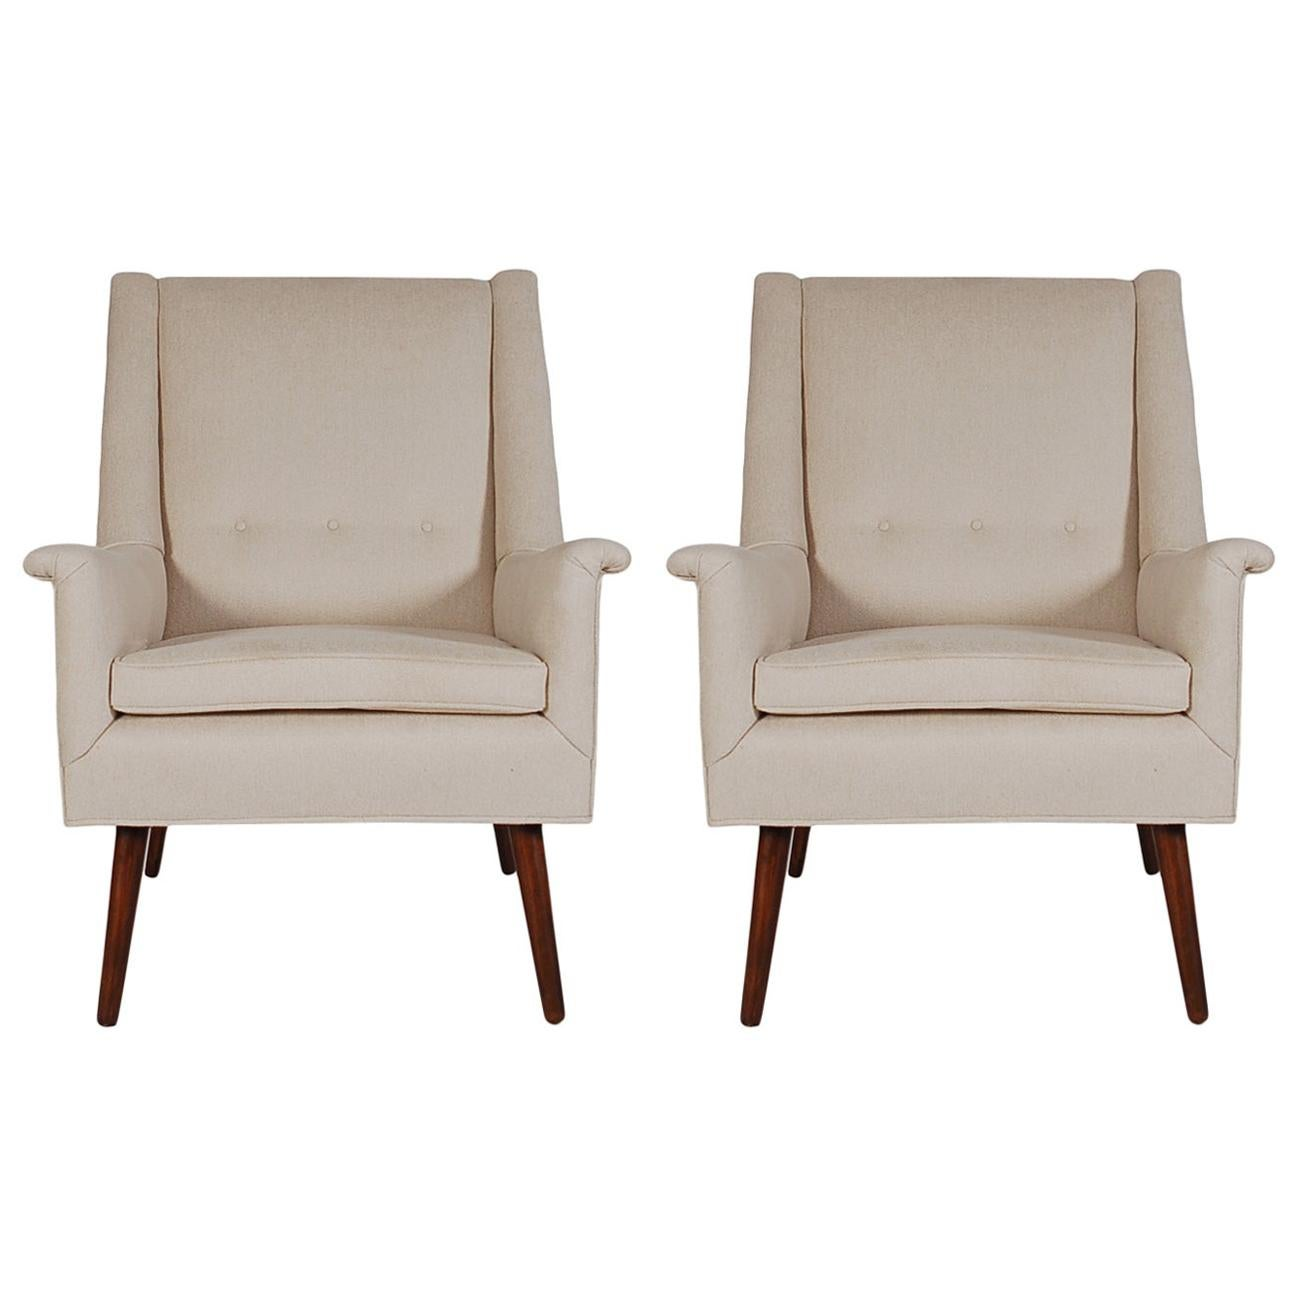 Midcentury Danish Modern Upholstered Armchair Lounge Chairs After DUX in Walnut